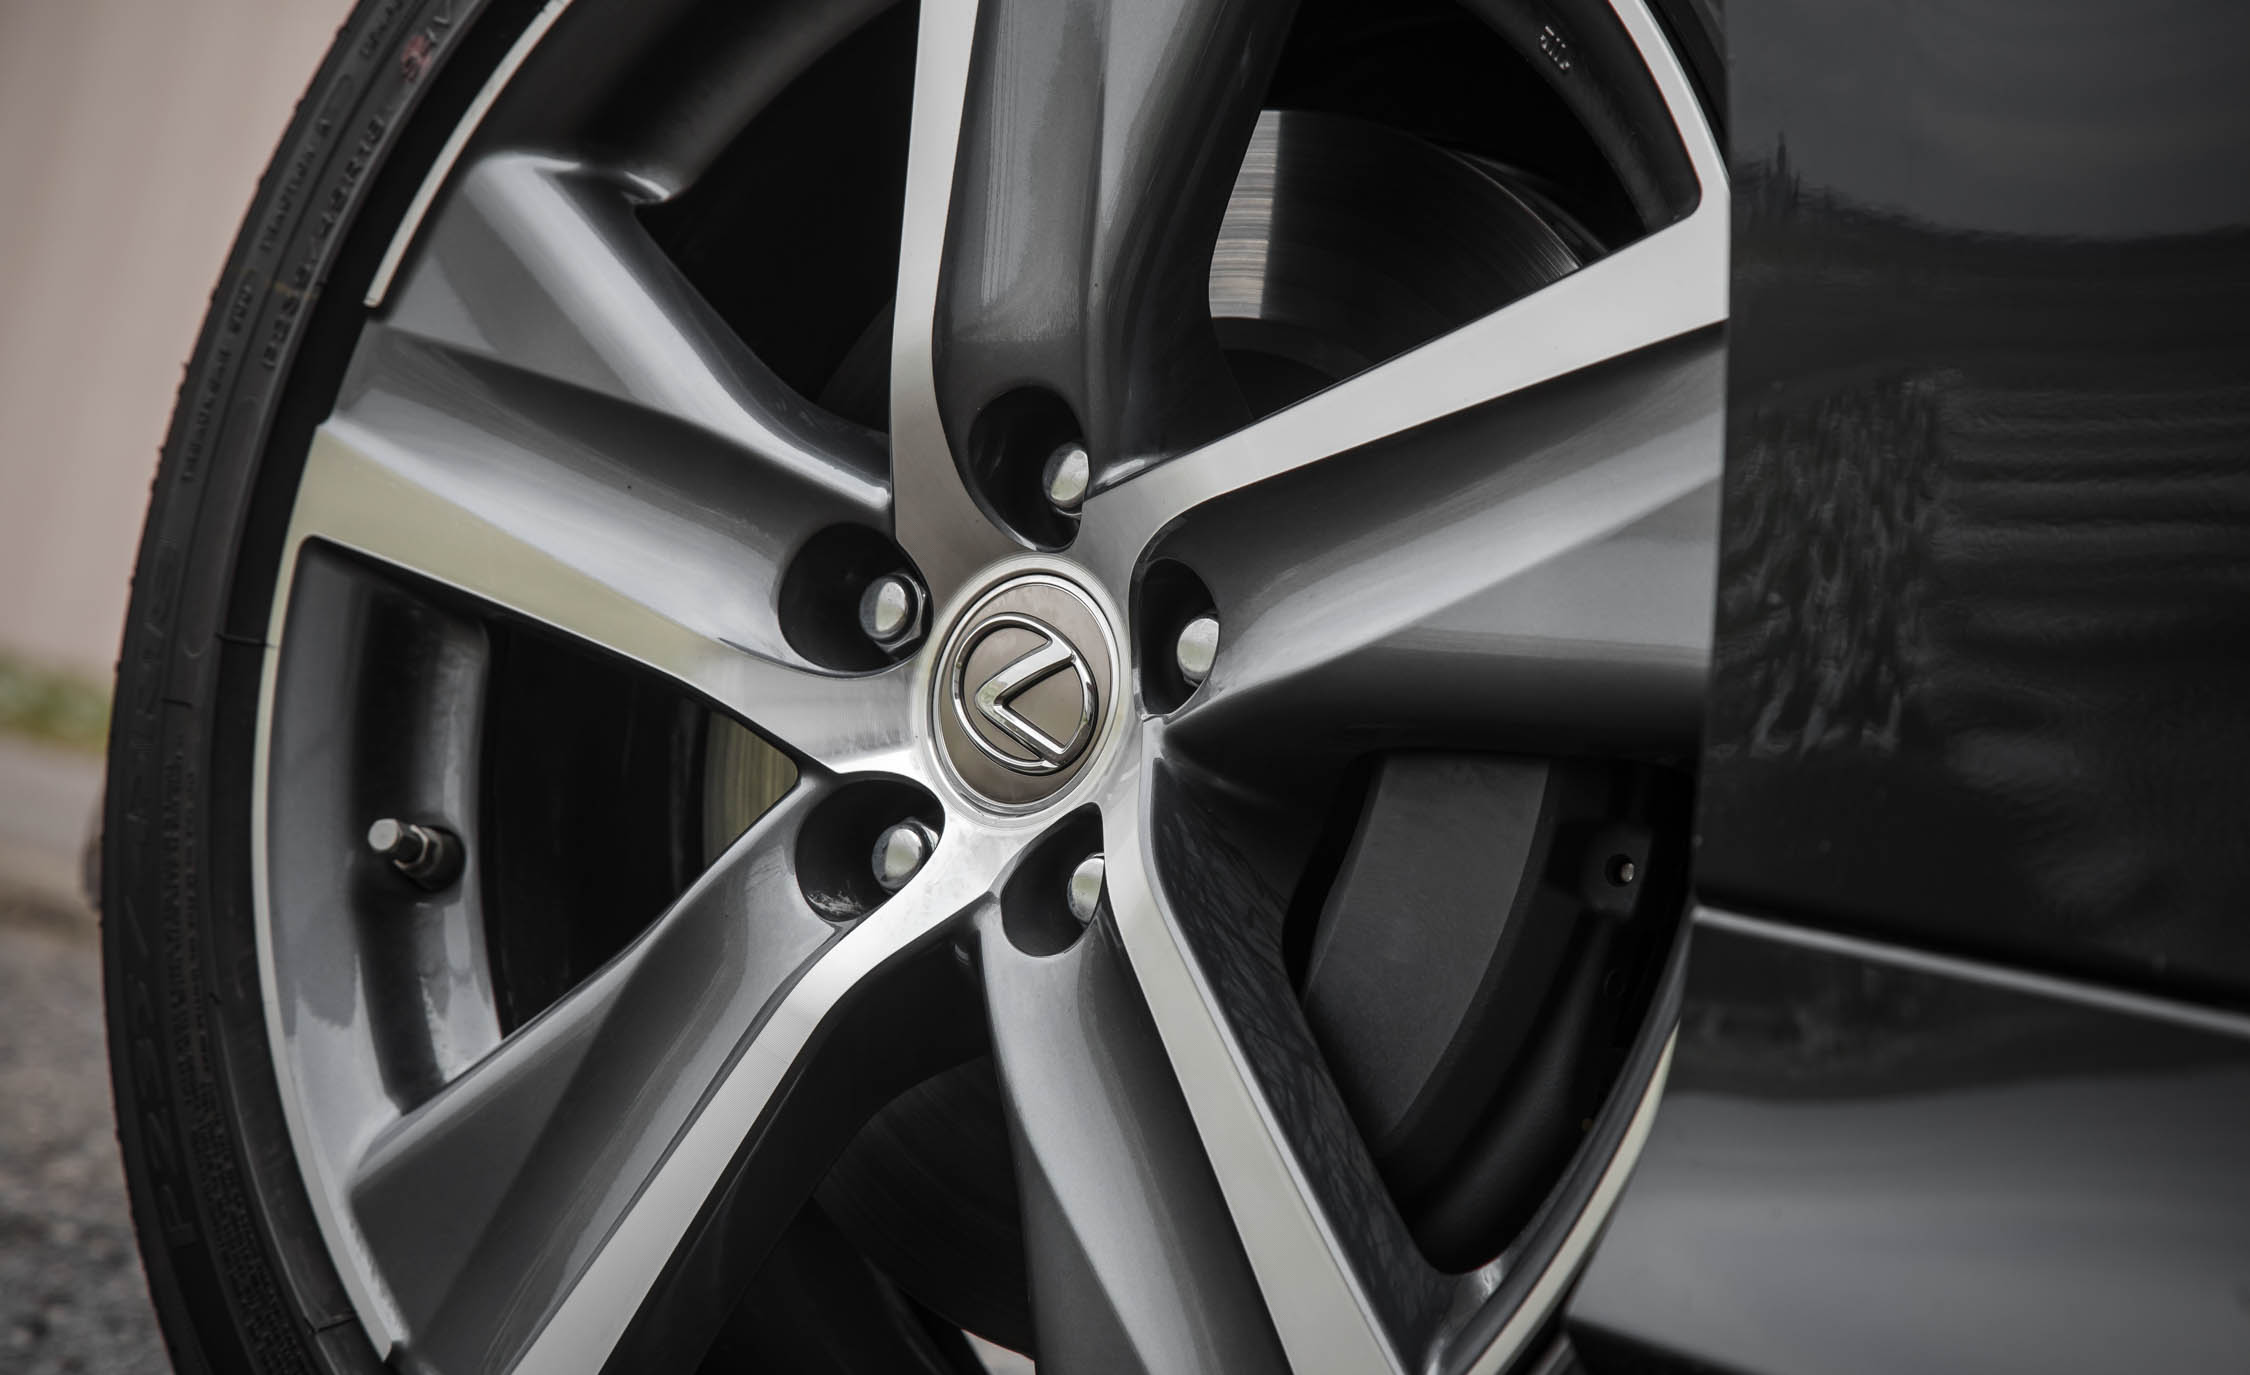 2017 Lexus GS200t Exterior View Wheel Trim (Photo 14 of 26)